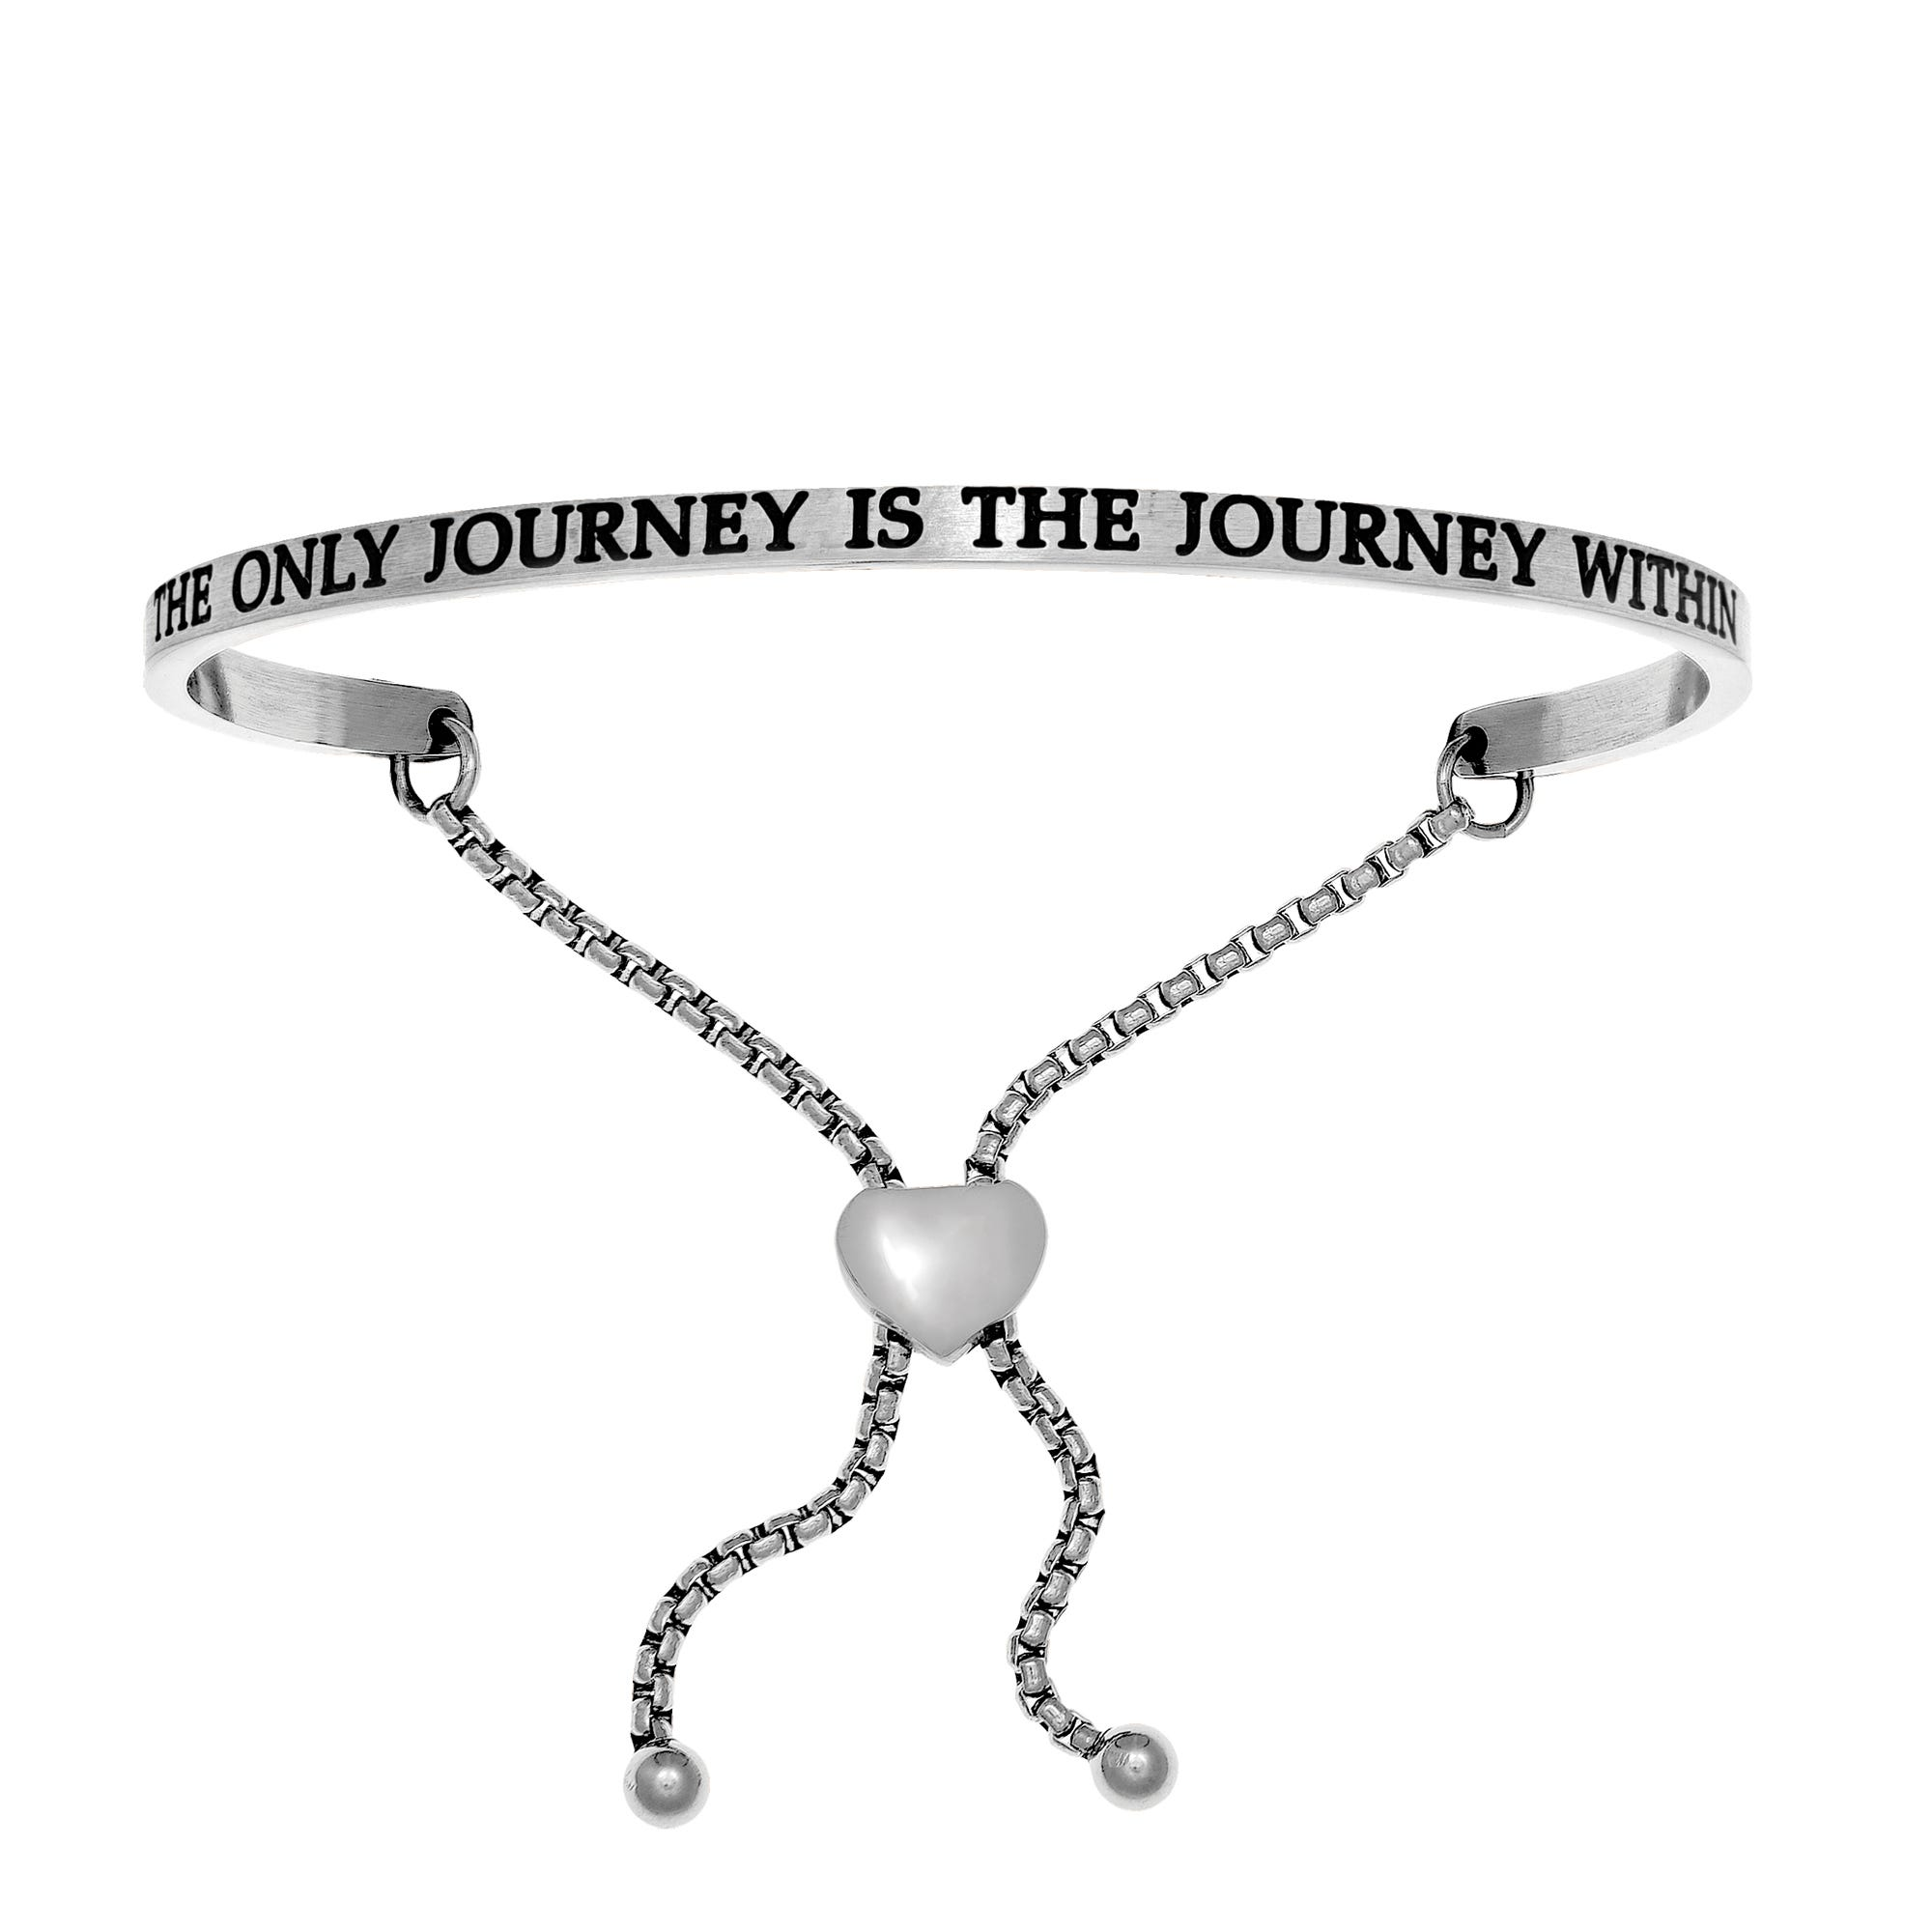 The Journey Within. Intuitions Bolo Bracelet in White Stainless Steel